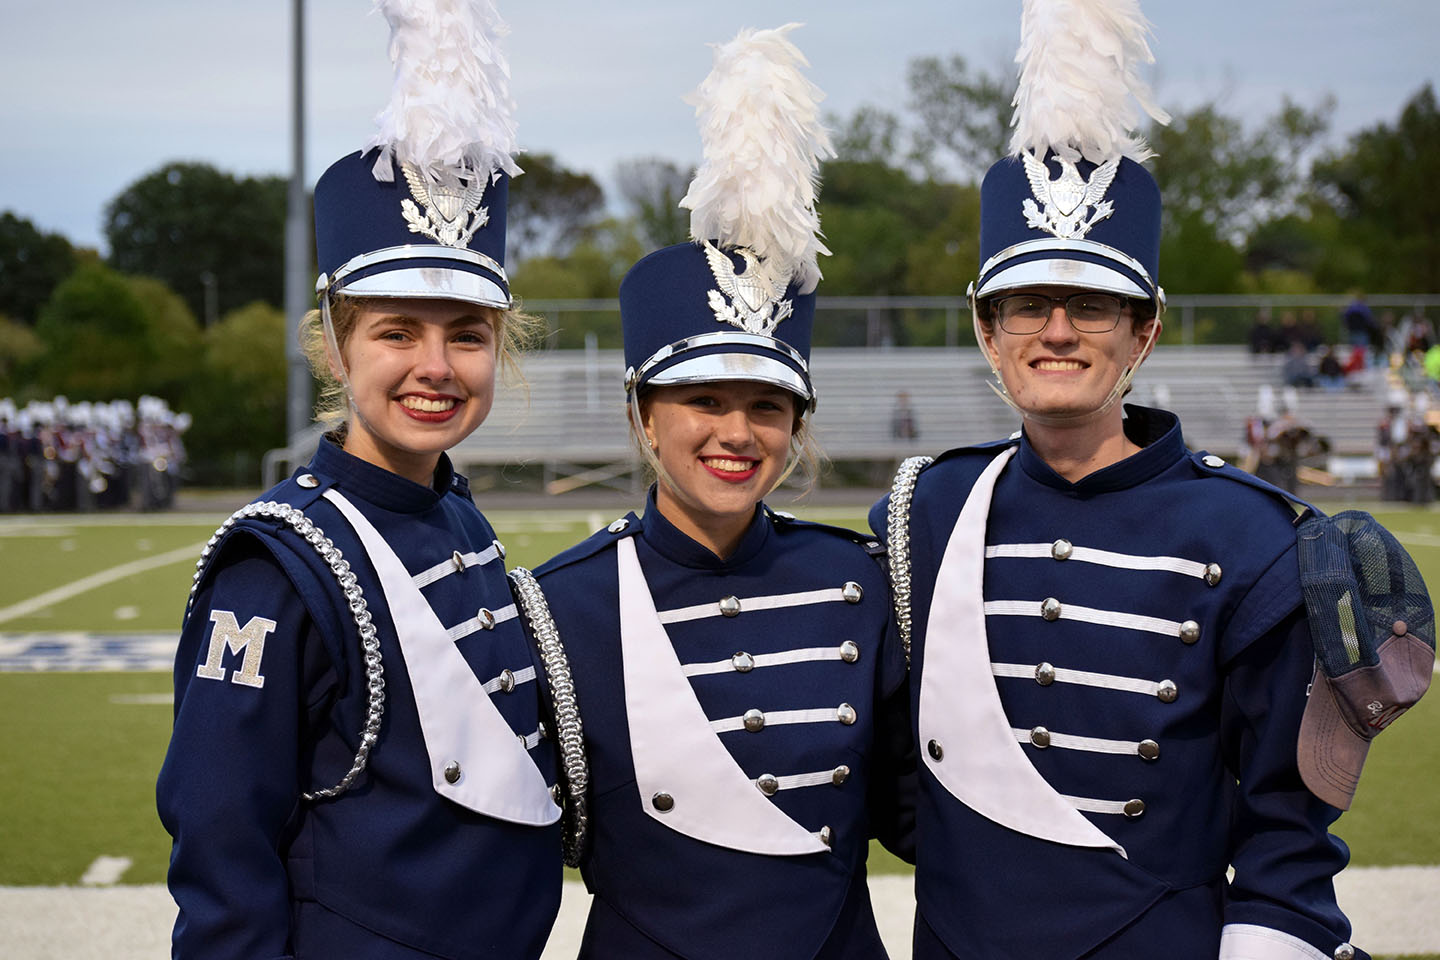 Big Blue Marching band Drum Majors (left to right) Tess Garvin, senior; Maggie Fontanini, junior; and Chris Carter, senior, in uniform at Bishop Stadium.